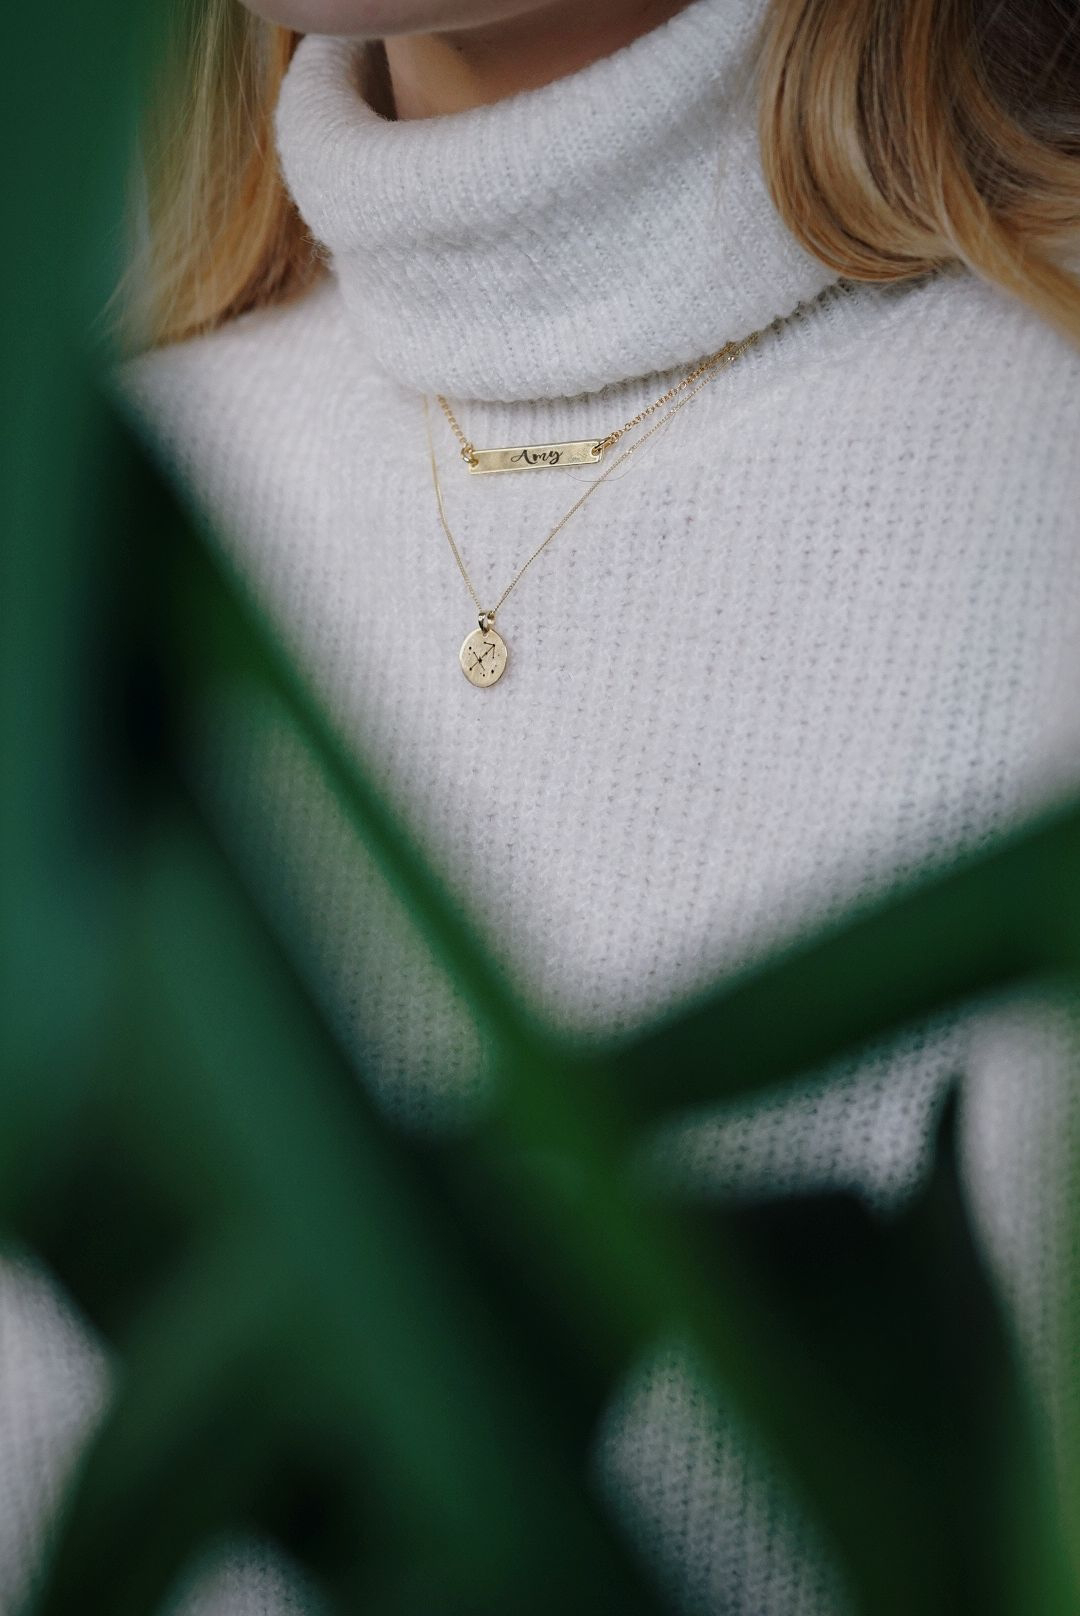 close up of girl wearing two necklaces, one is a gold bar necklace, the other a pendant